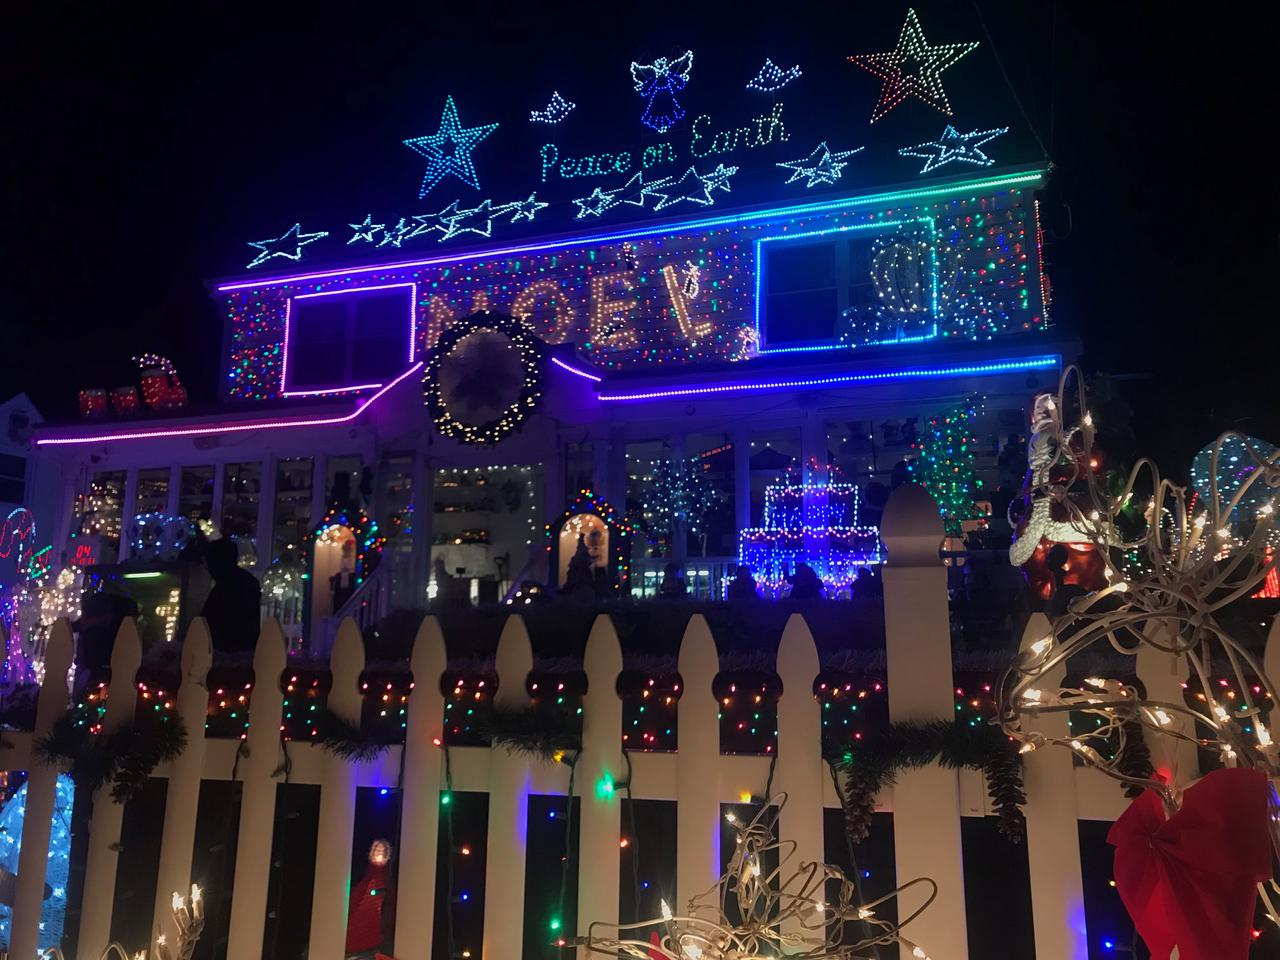 christmas lights decorations are lit at the halliwell family home in roseville terrace in fairfield connecticut us on december 20 2017 - Christmas Lights And Decorations